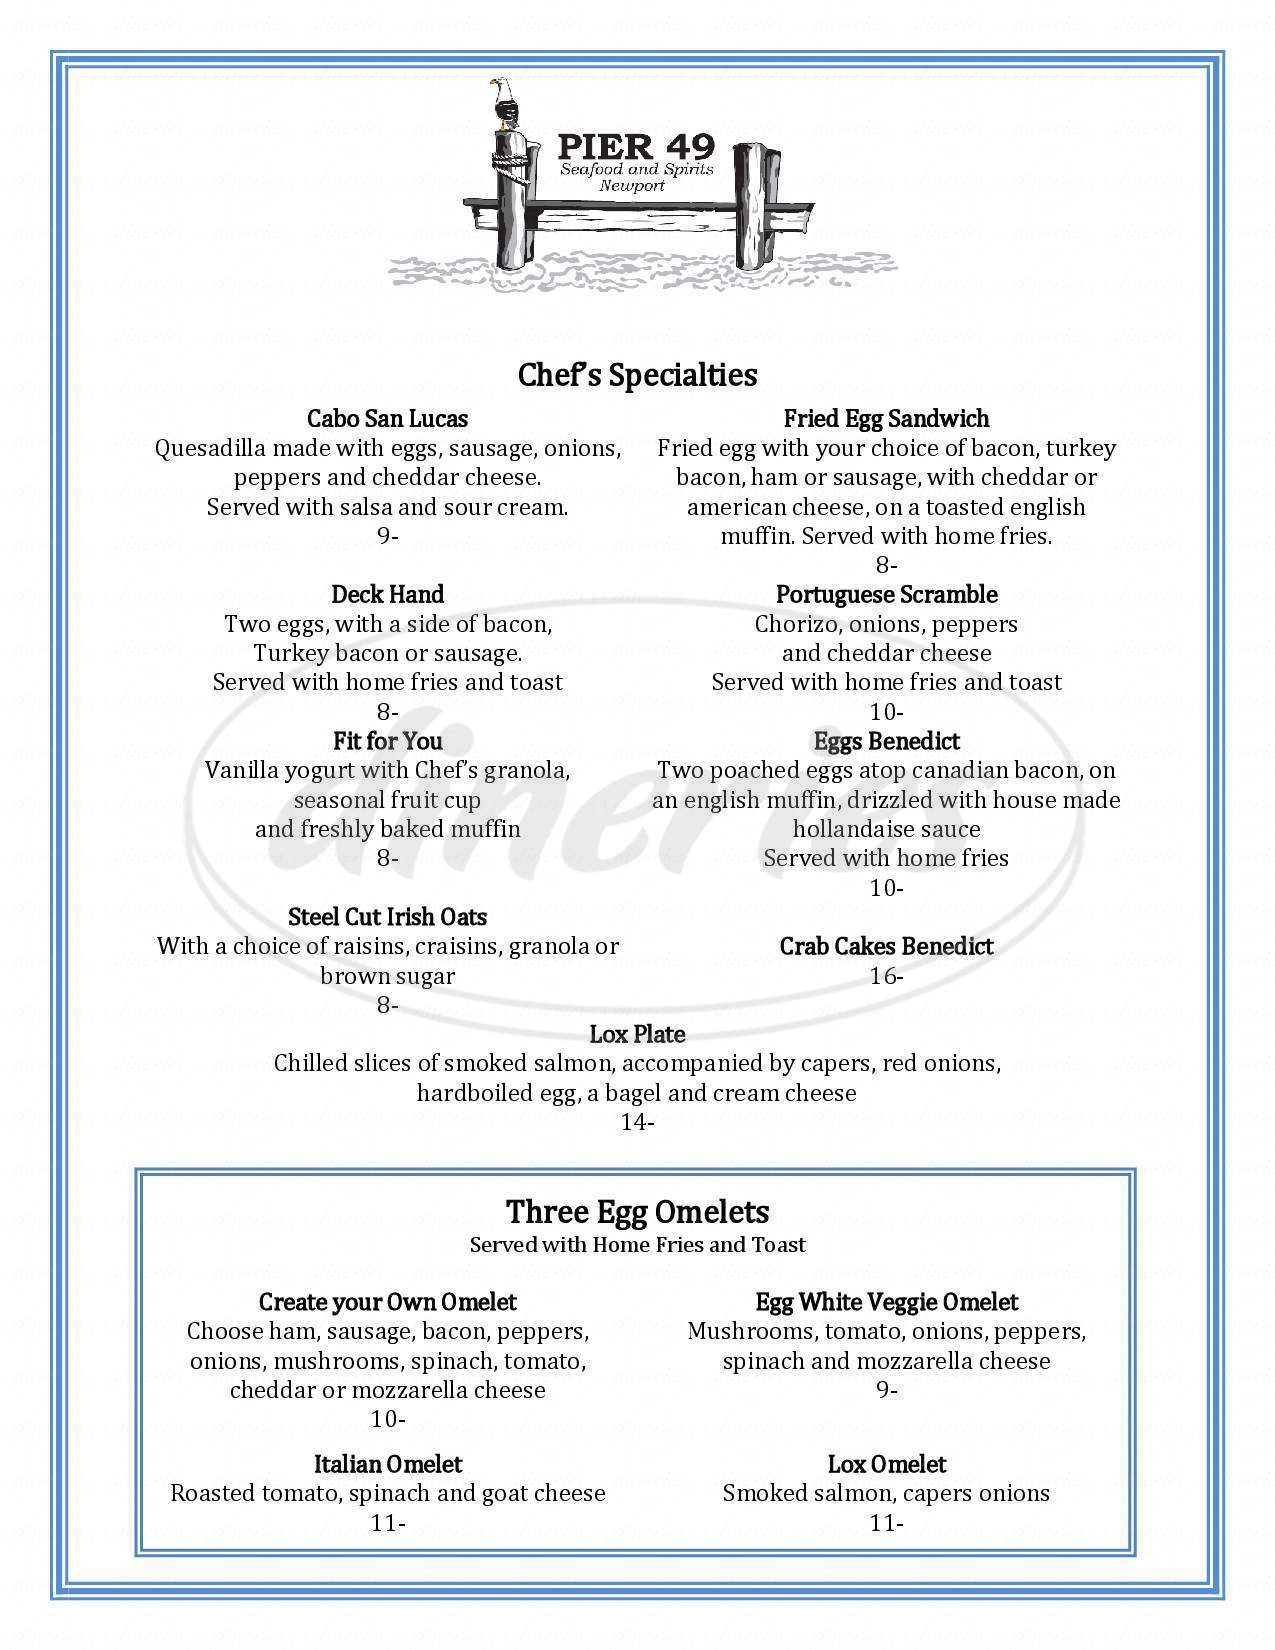 menu for Pier 49 Seafood and Spirits